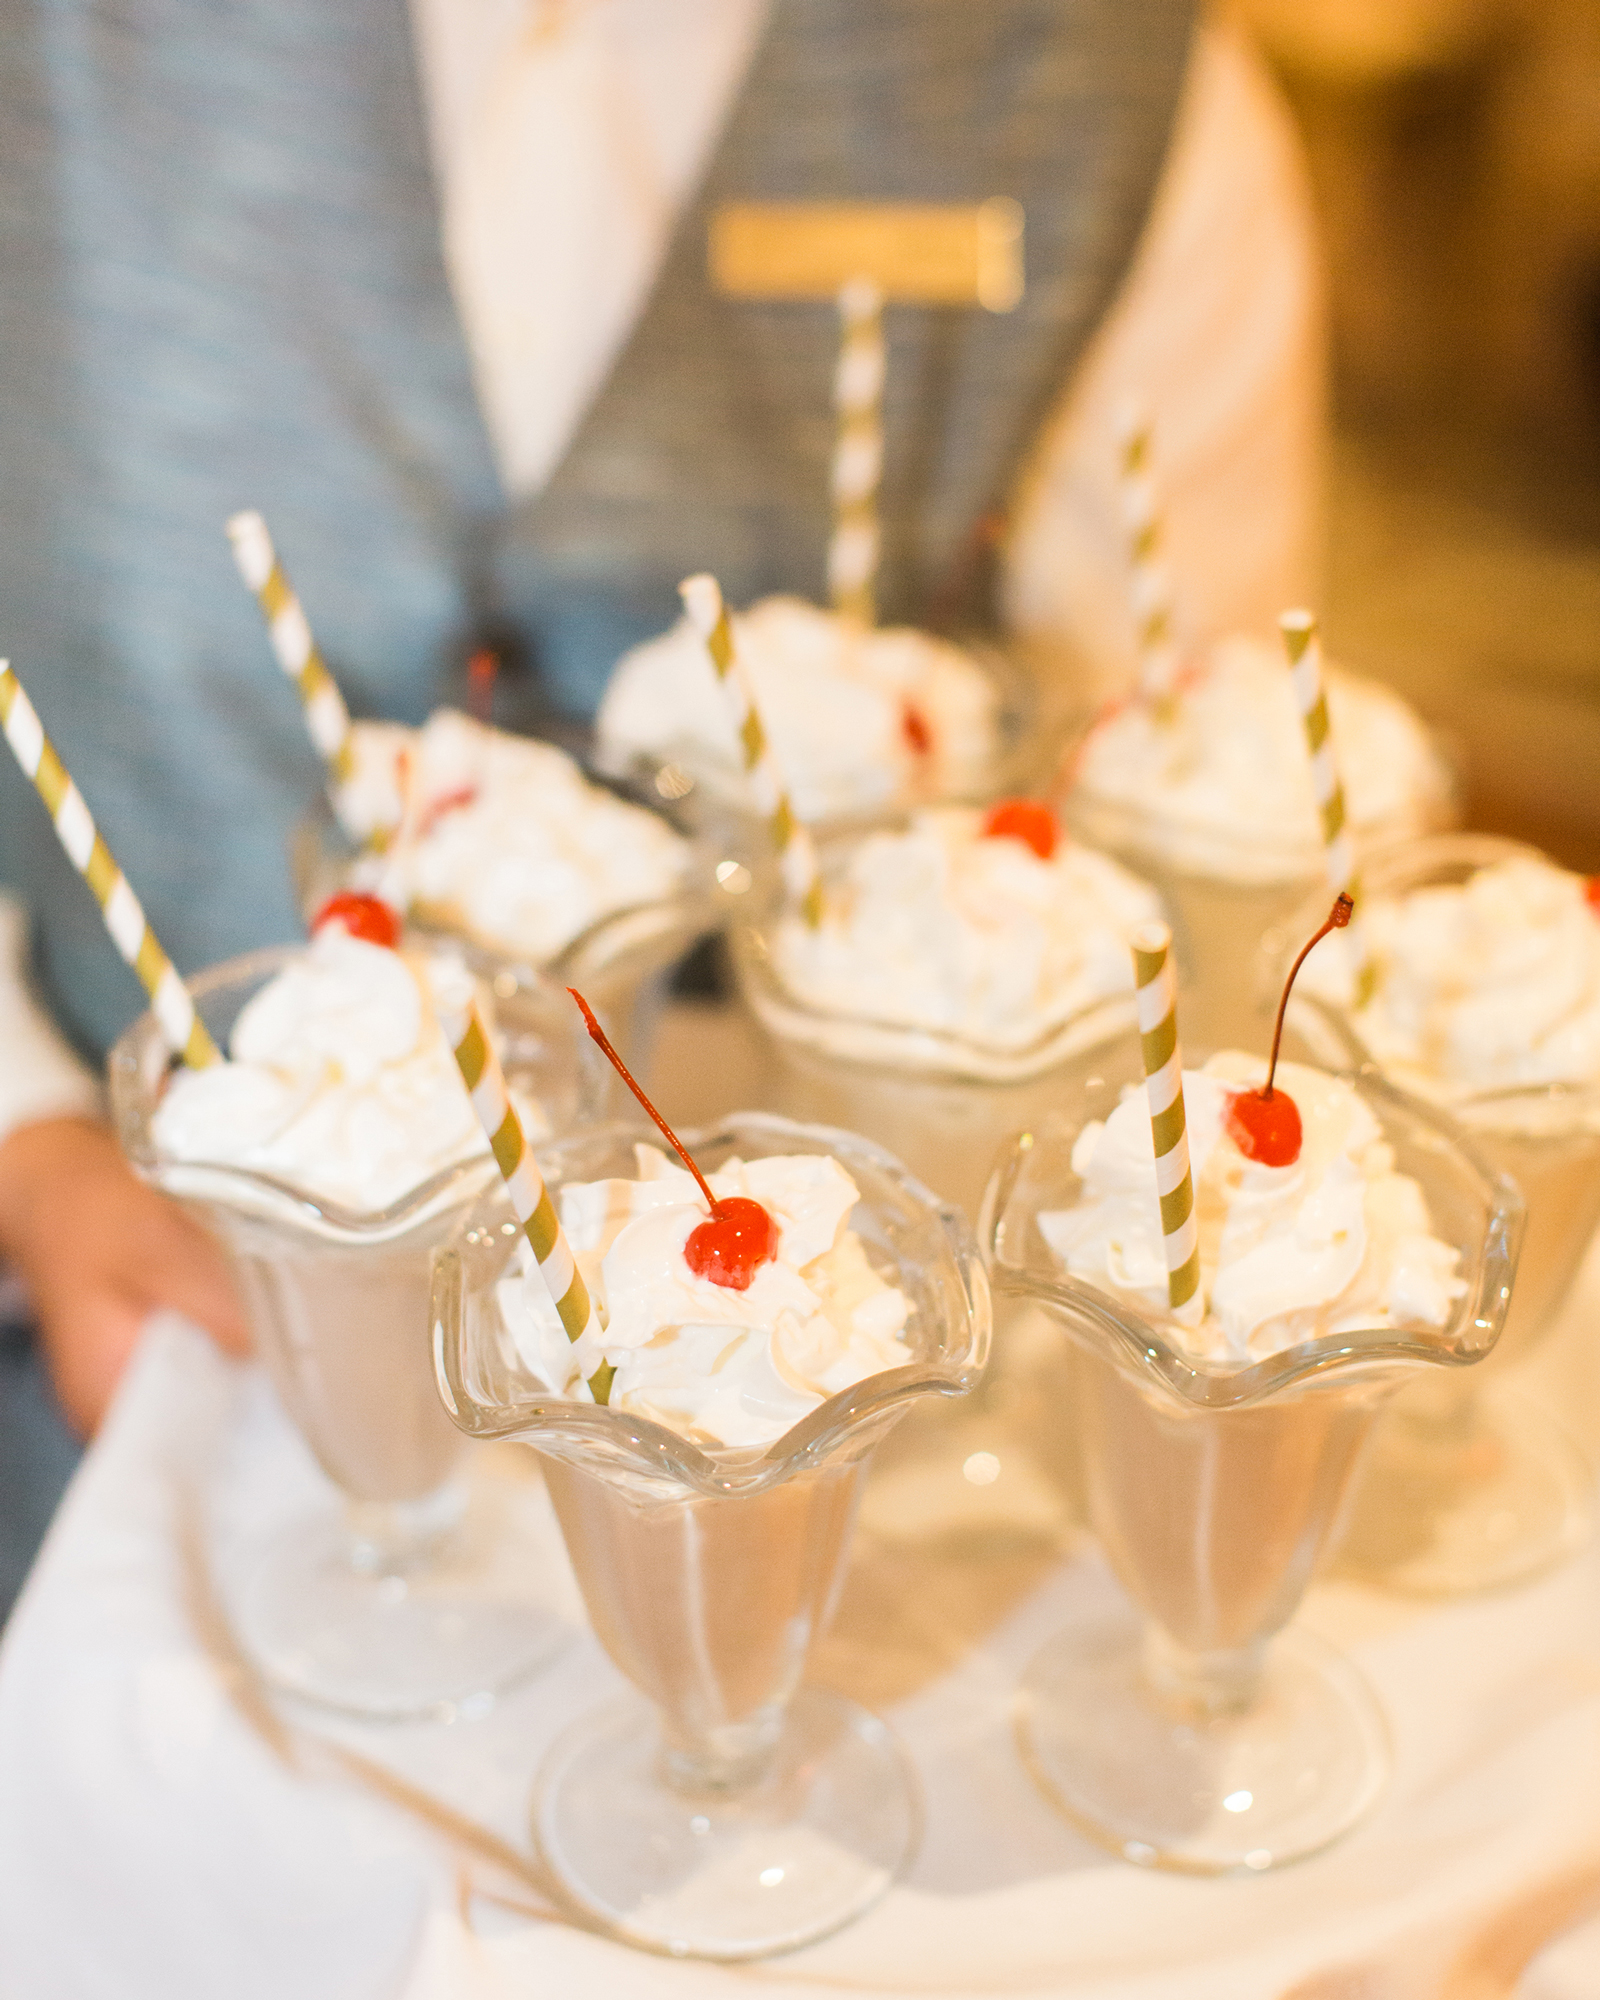 milkshakes topped with whipped cream and a cherry served on a tray